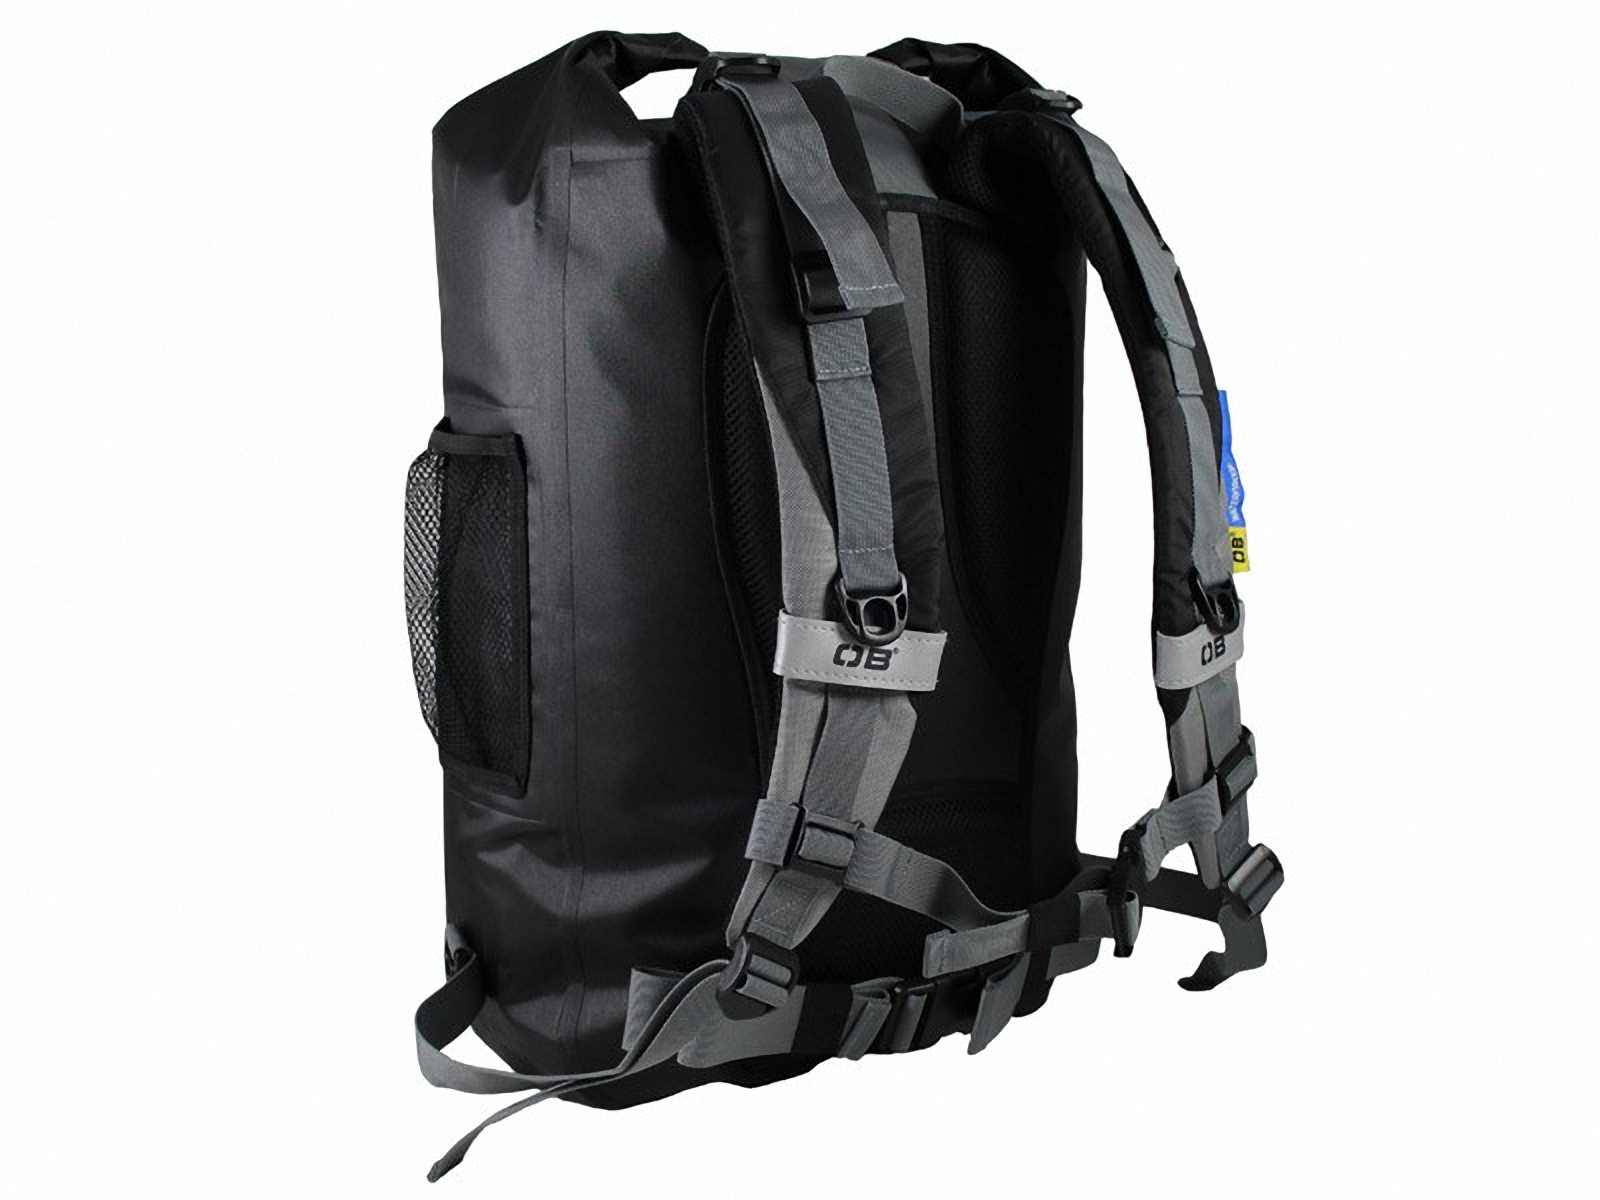 Водонепроницаемый рюкзак OverBoard OB1136BLK - Ultra-light Pro-Sports Waterproof Backpack - 30L. Фото 1